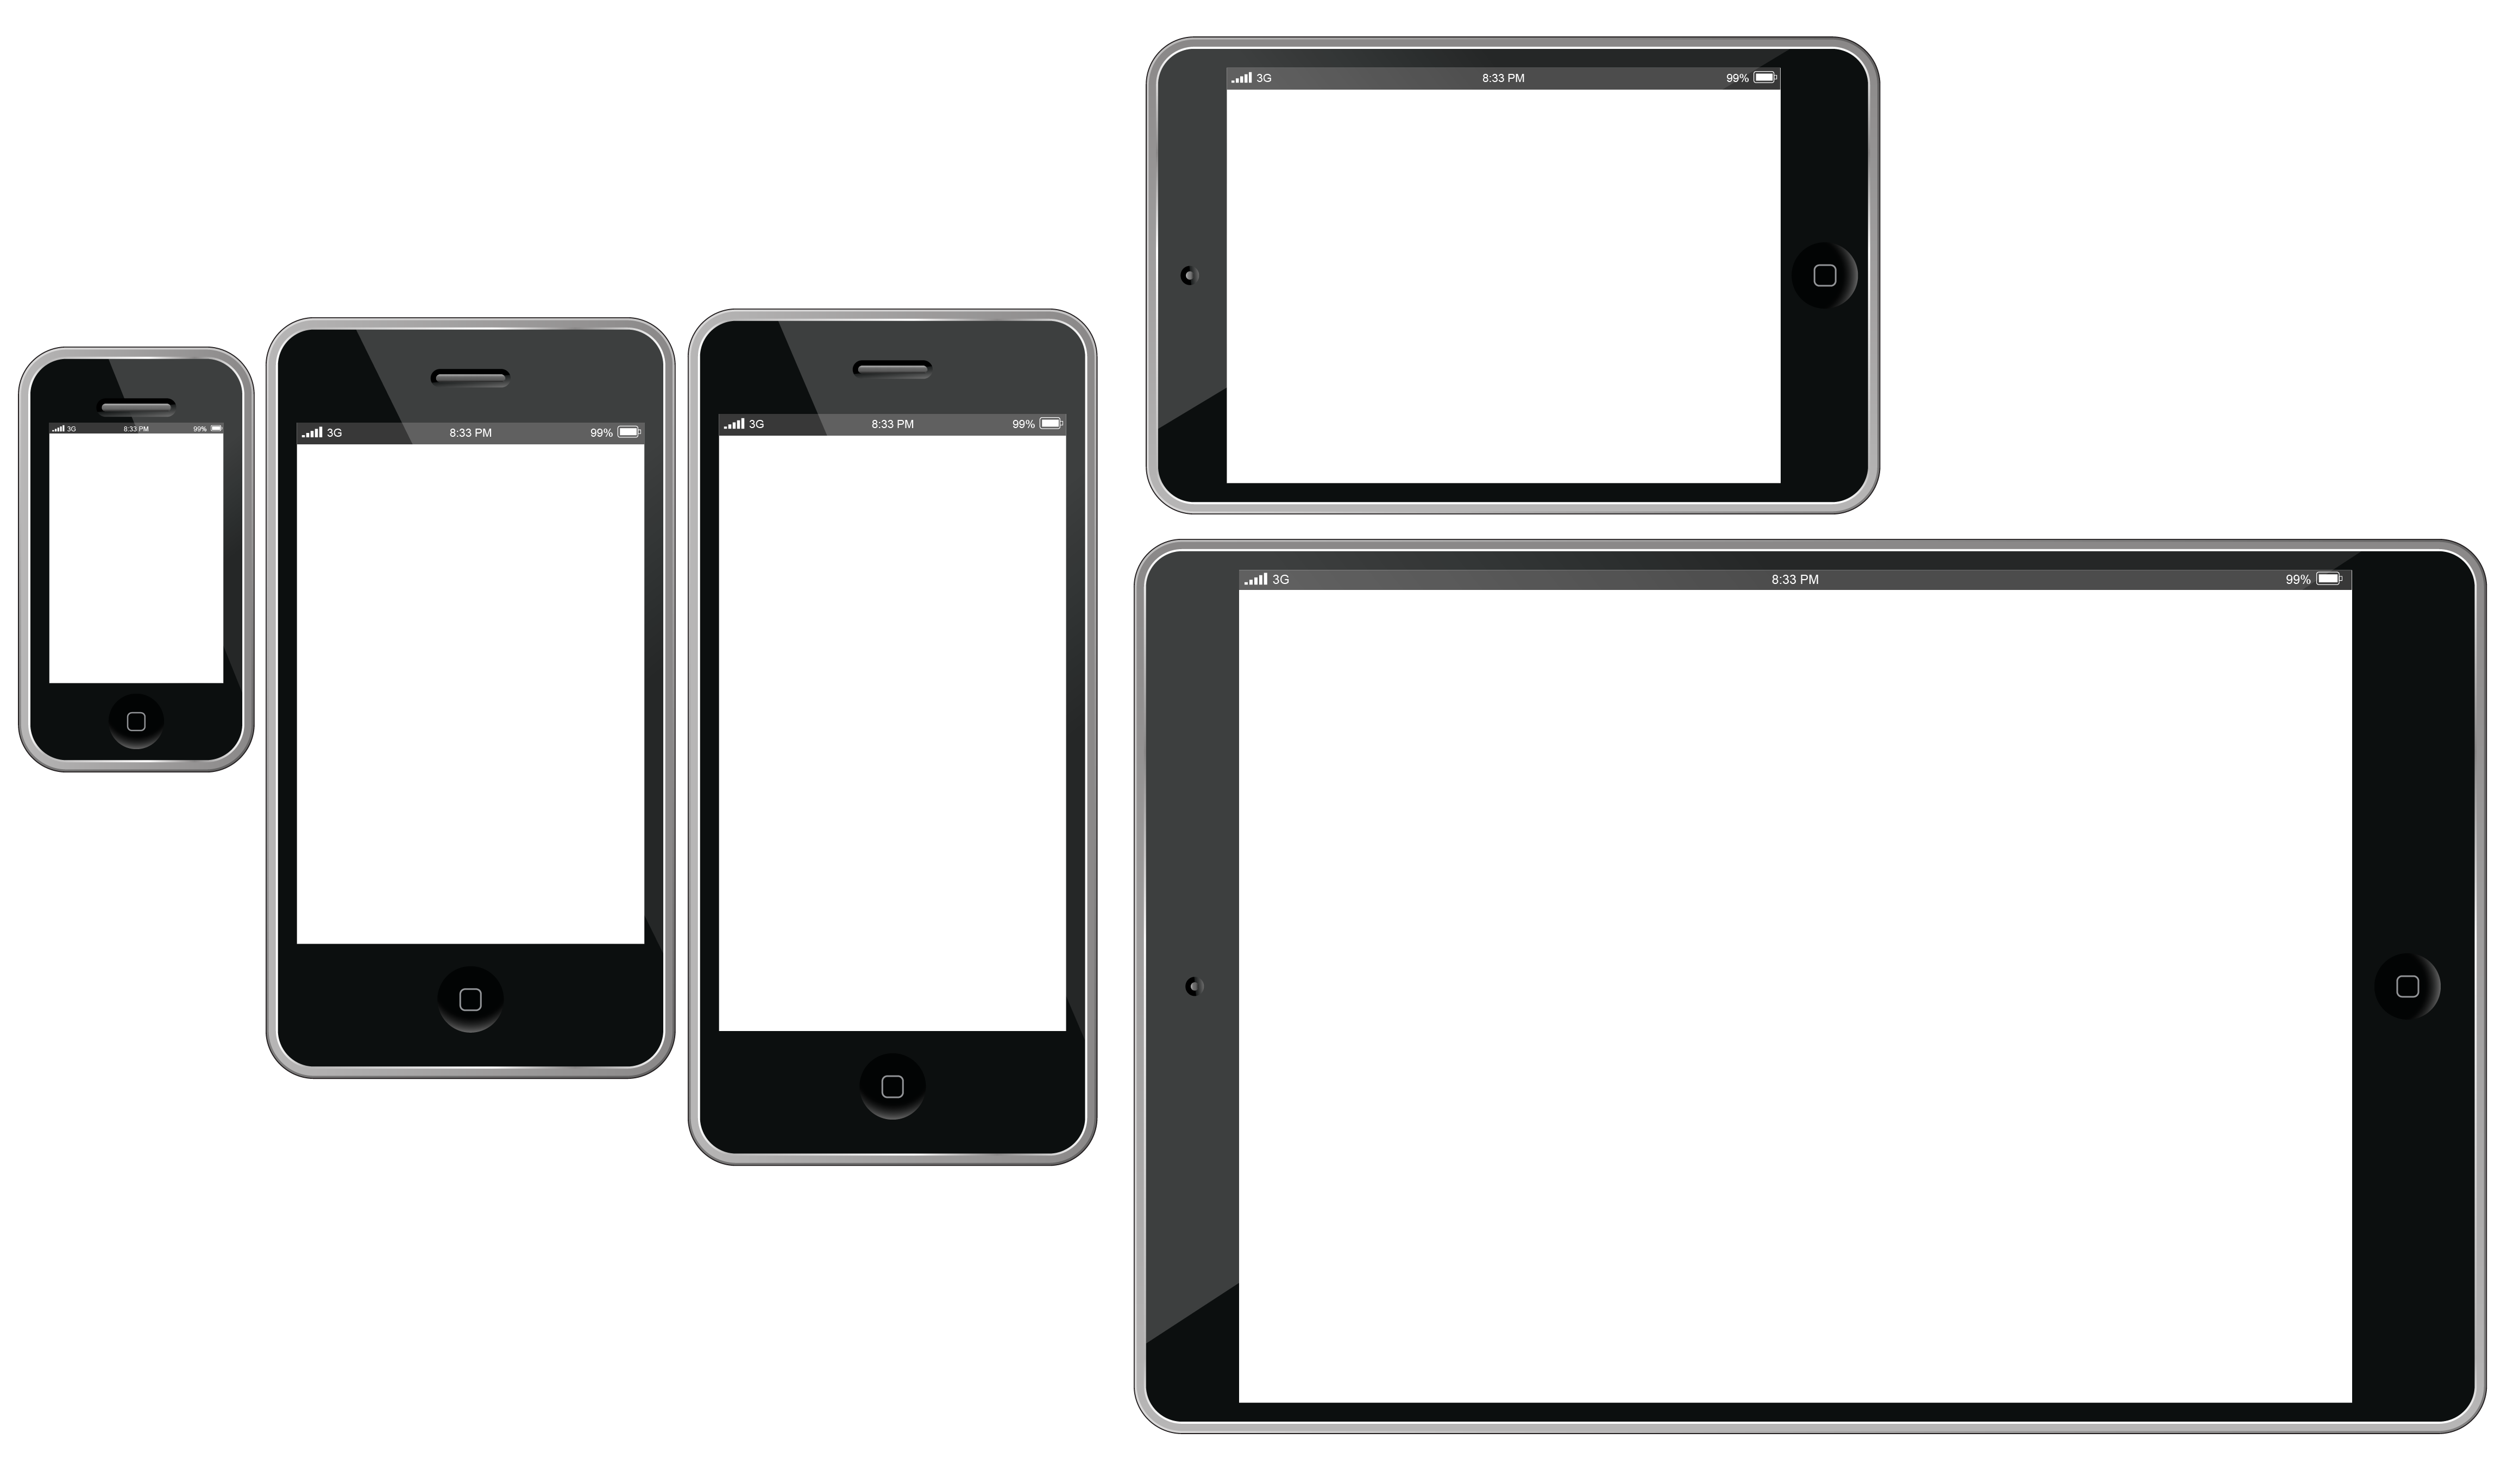 mobile device management policy template - 16 transparent cell phone icons in png images